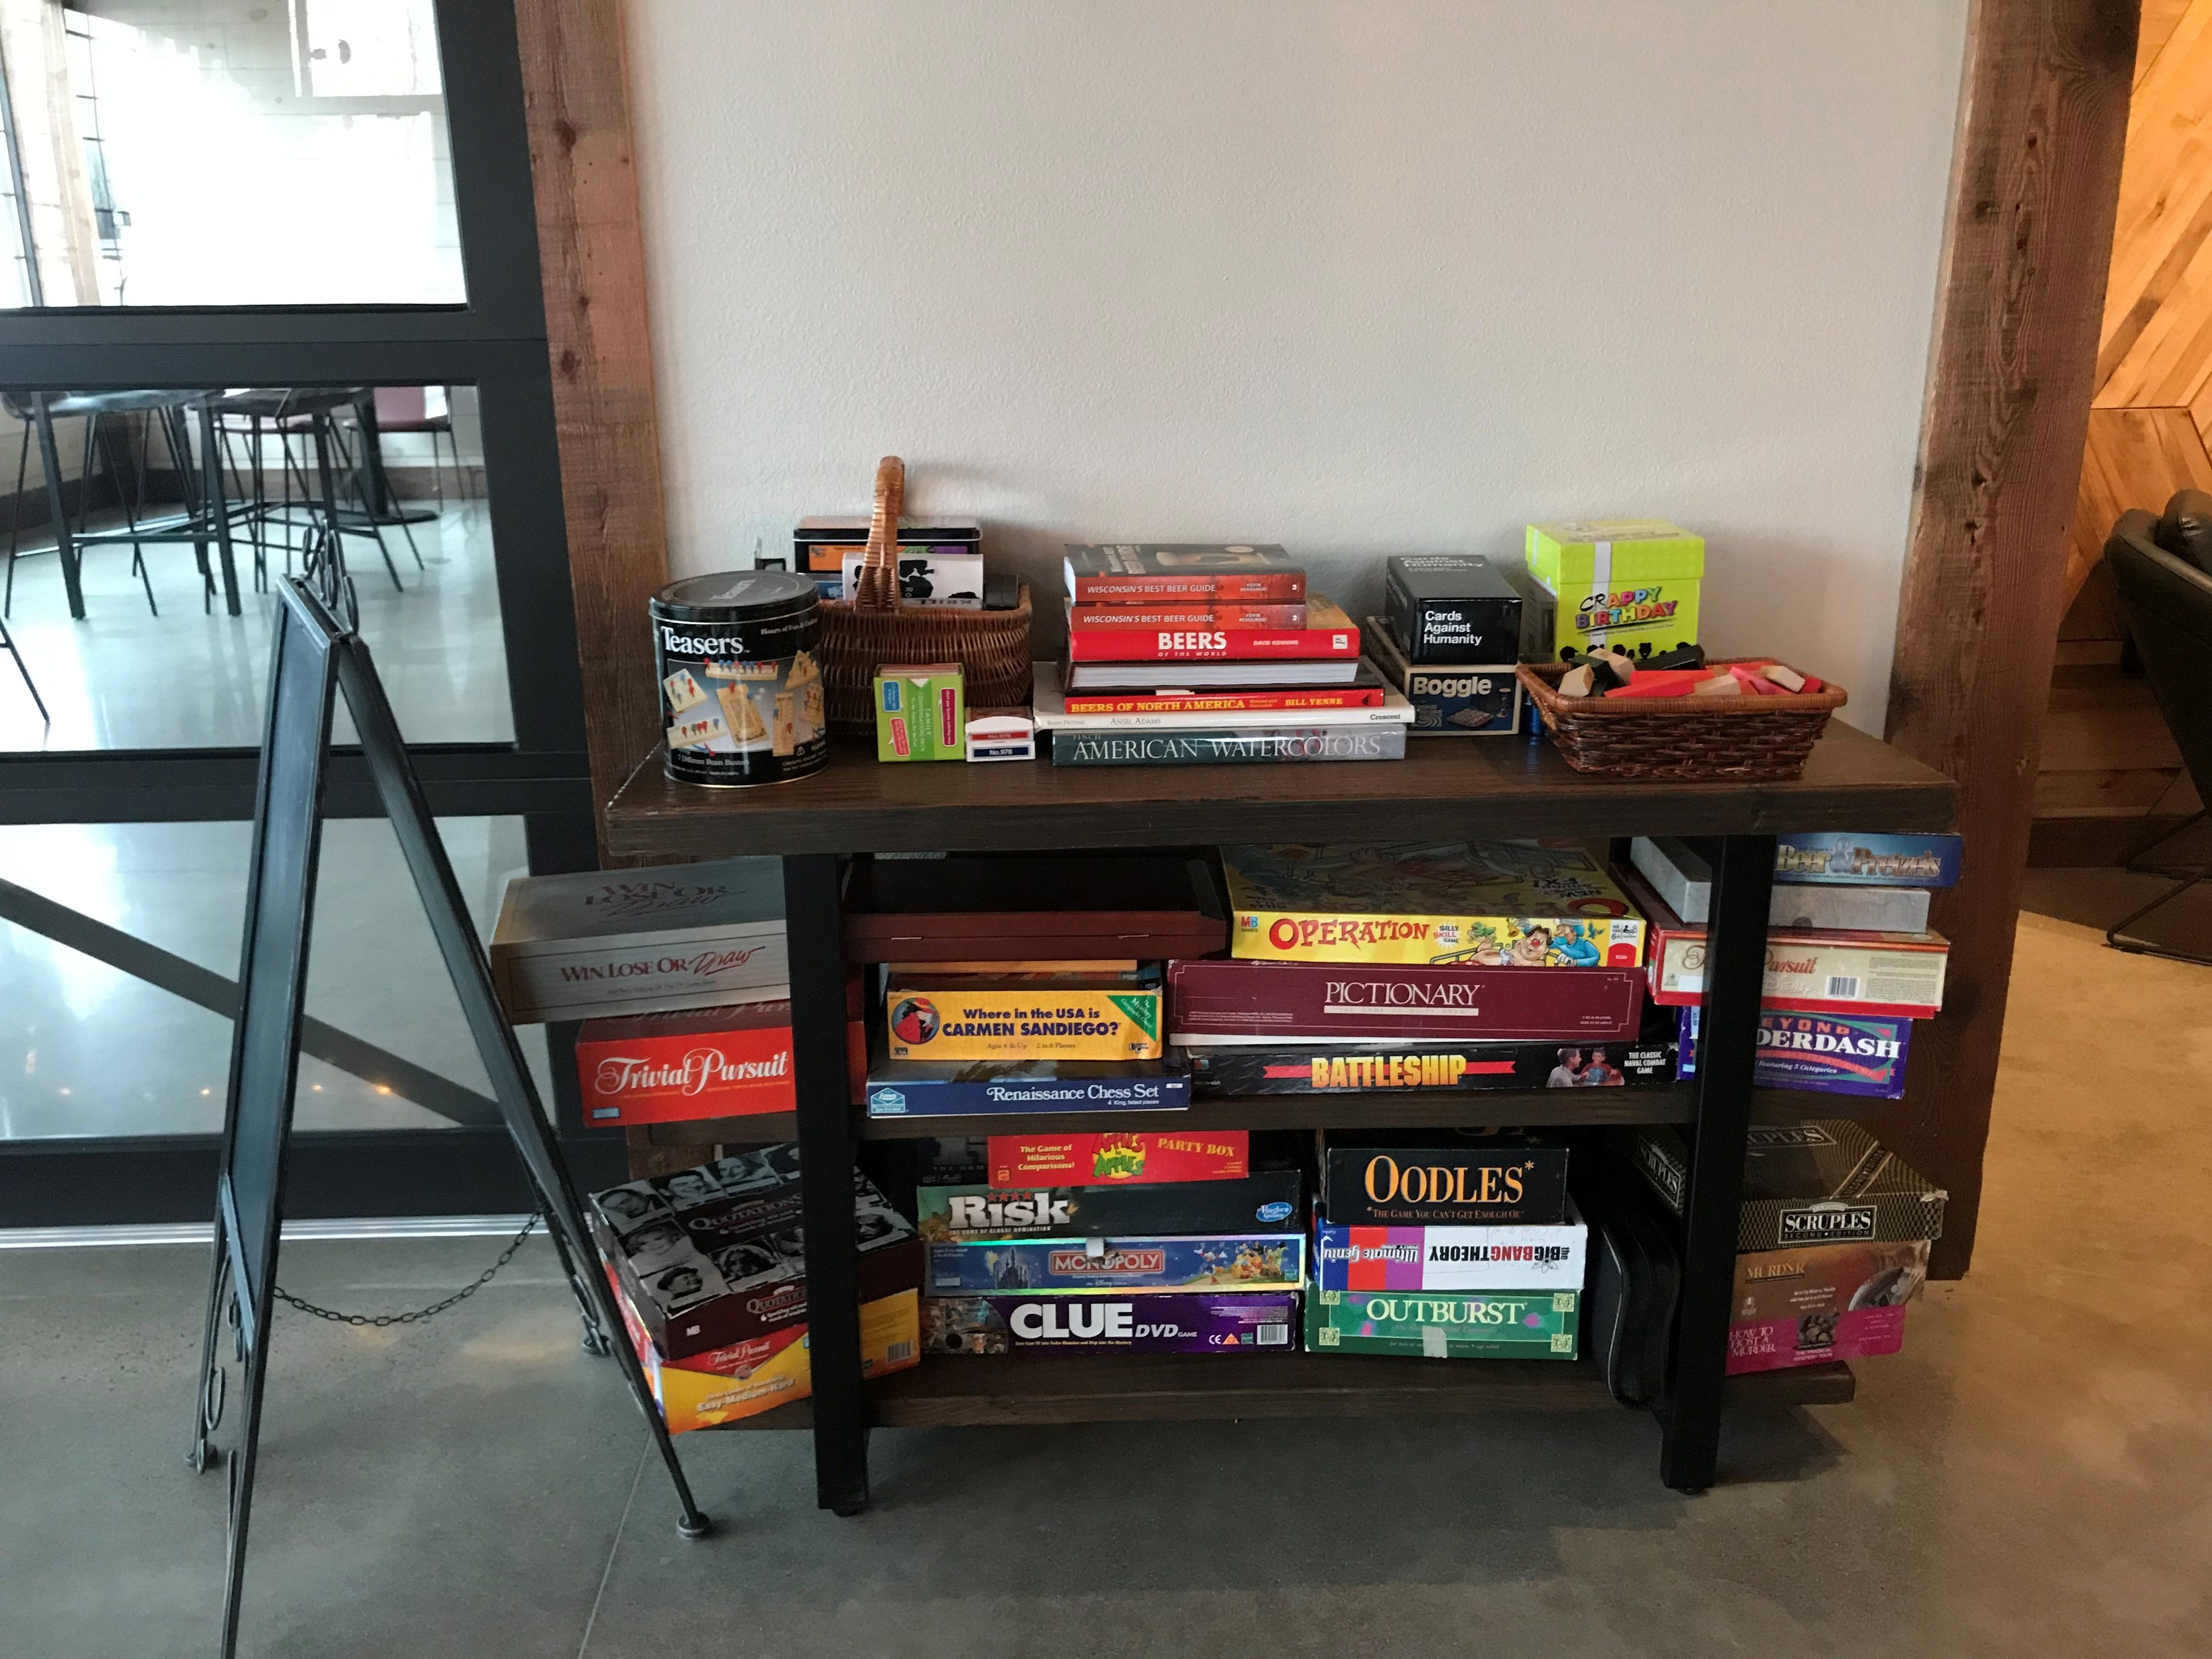 Board games are available to play at Mosinee Brewing Company. The brewery has hosted game nights in the past and will likely do more in the future.